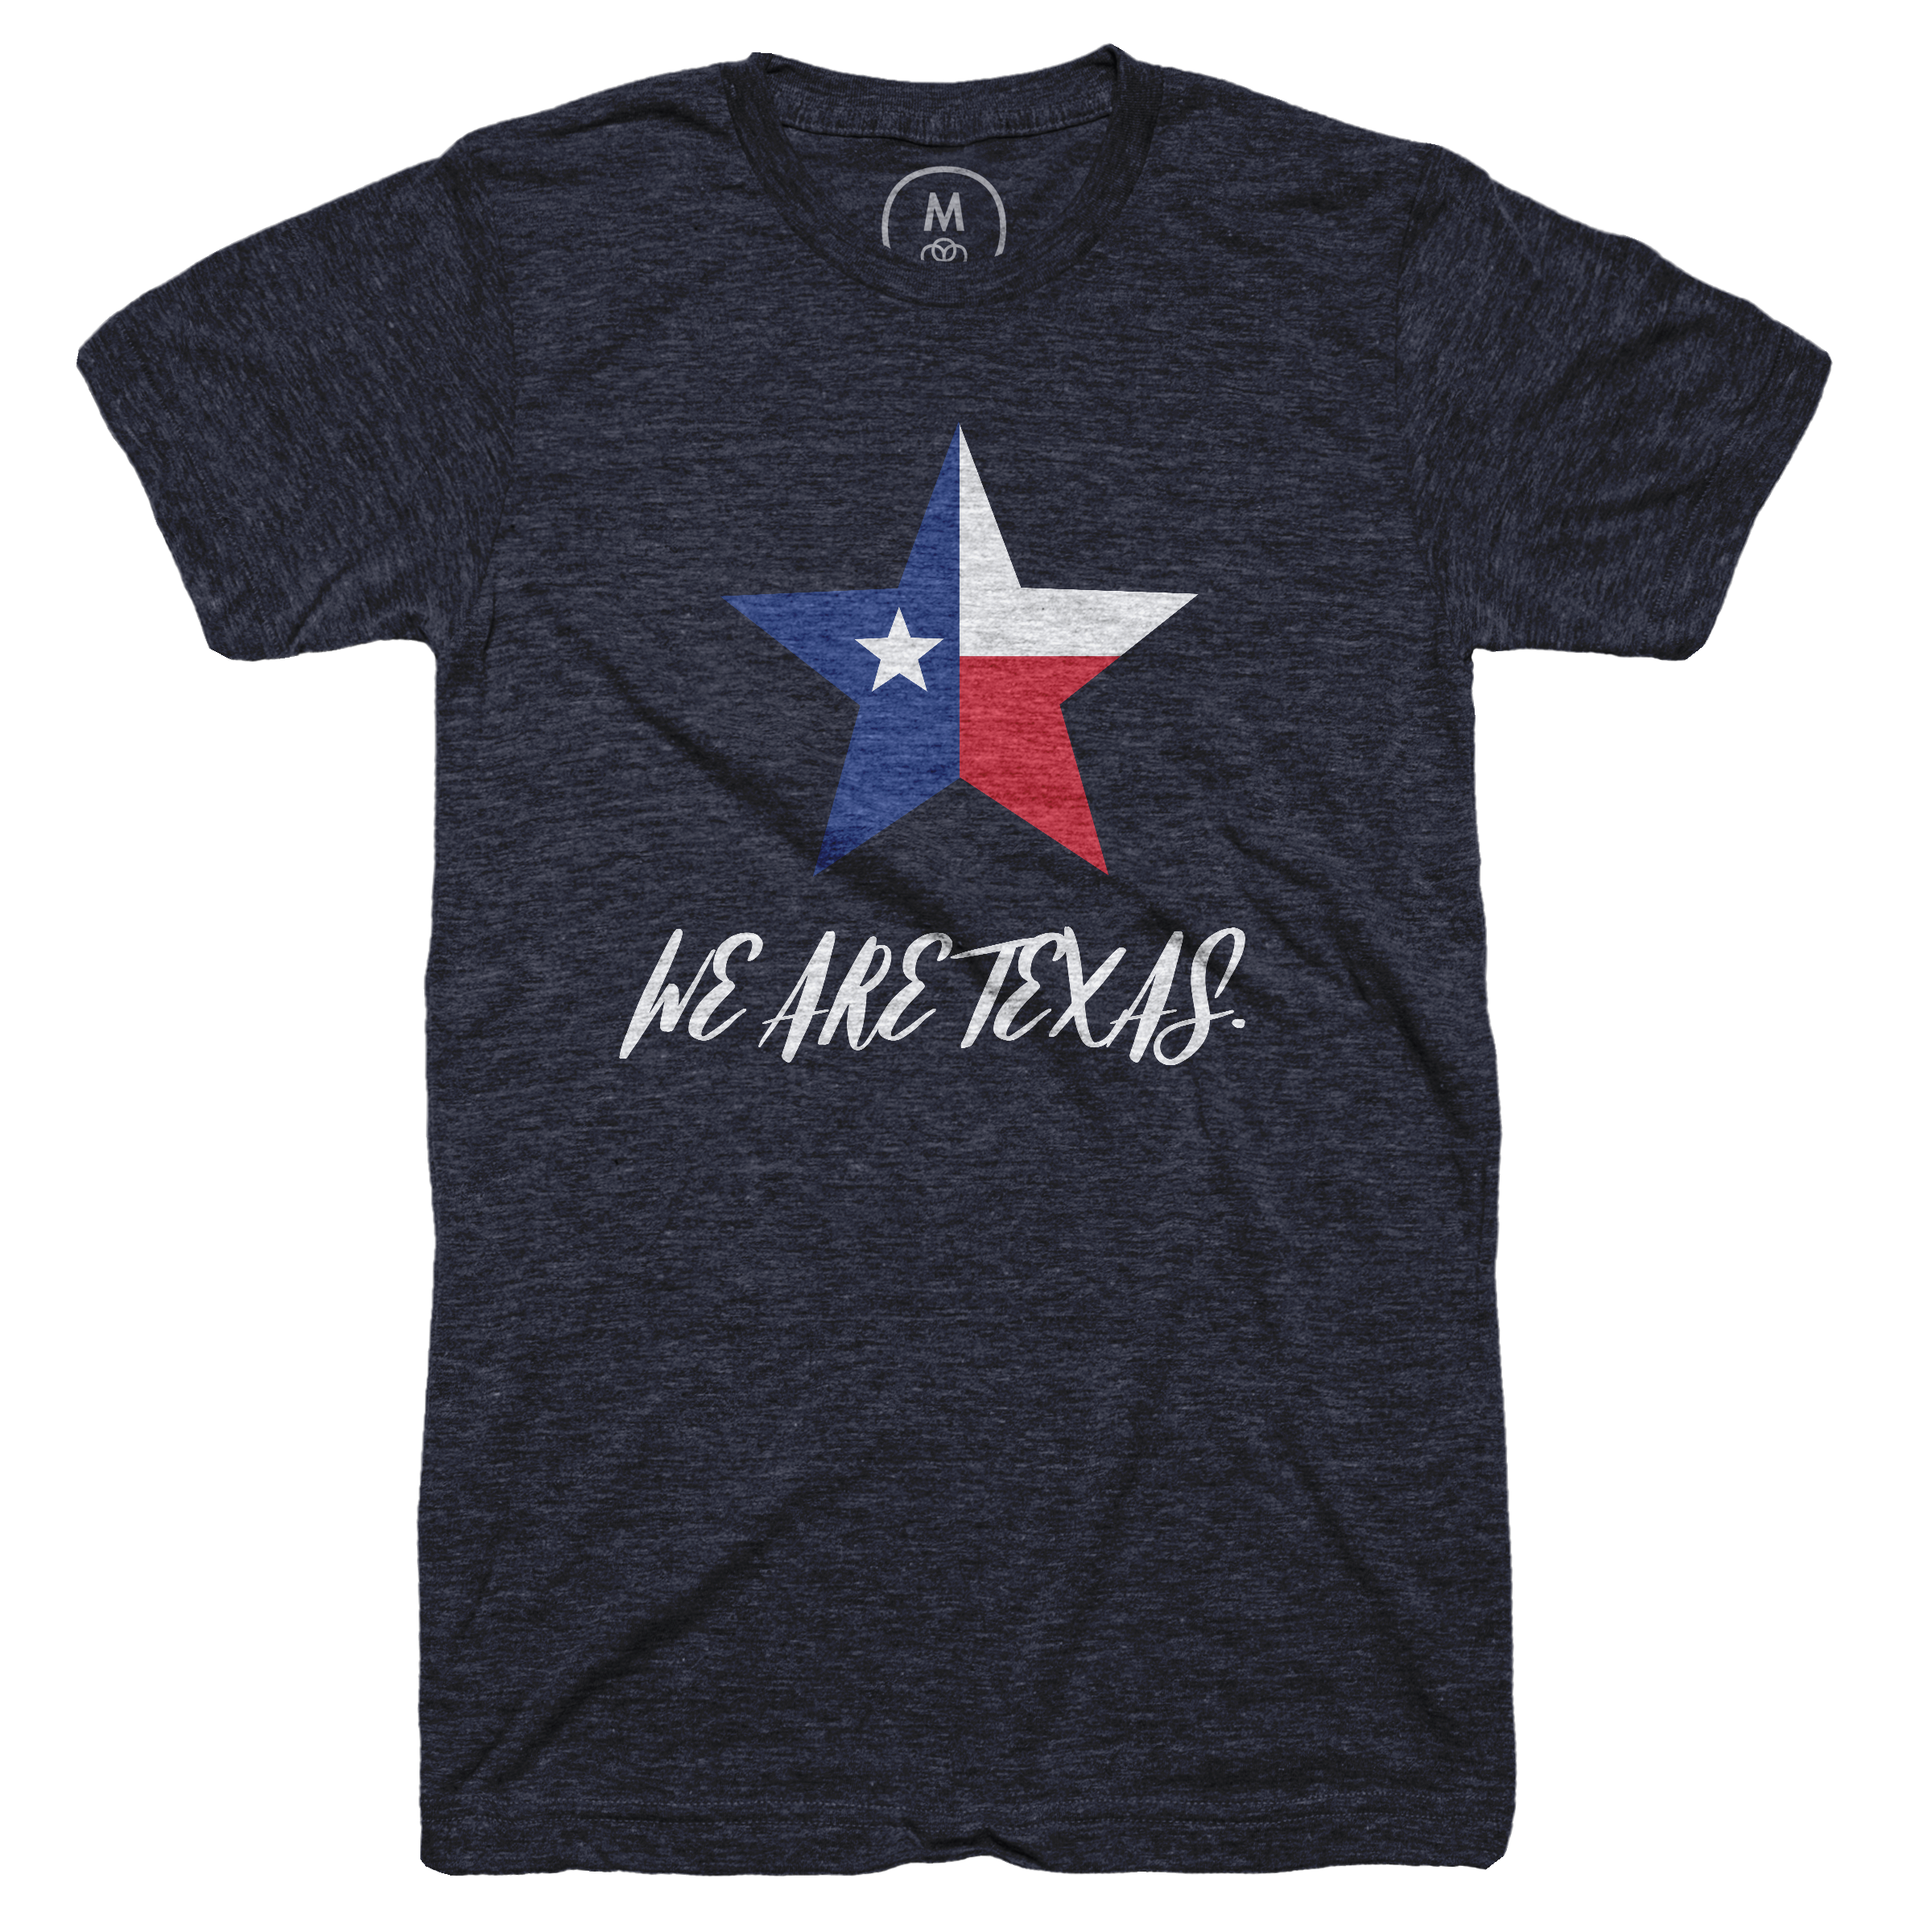 We Are Texas.